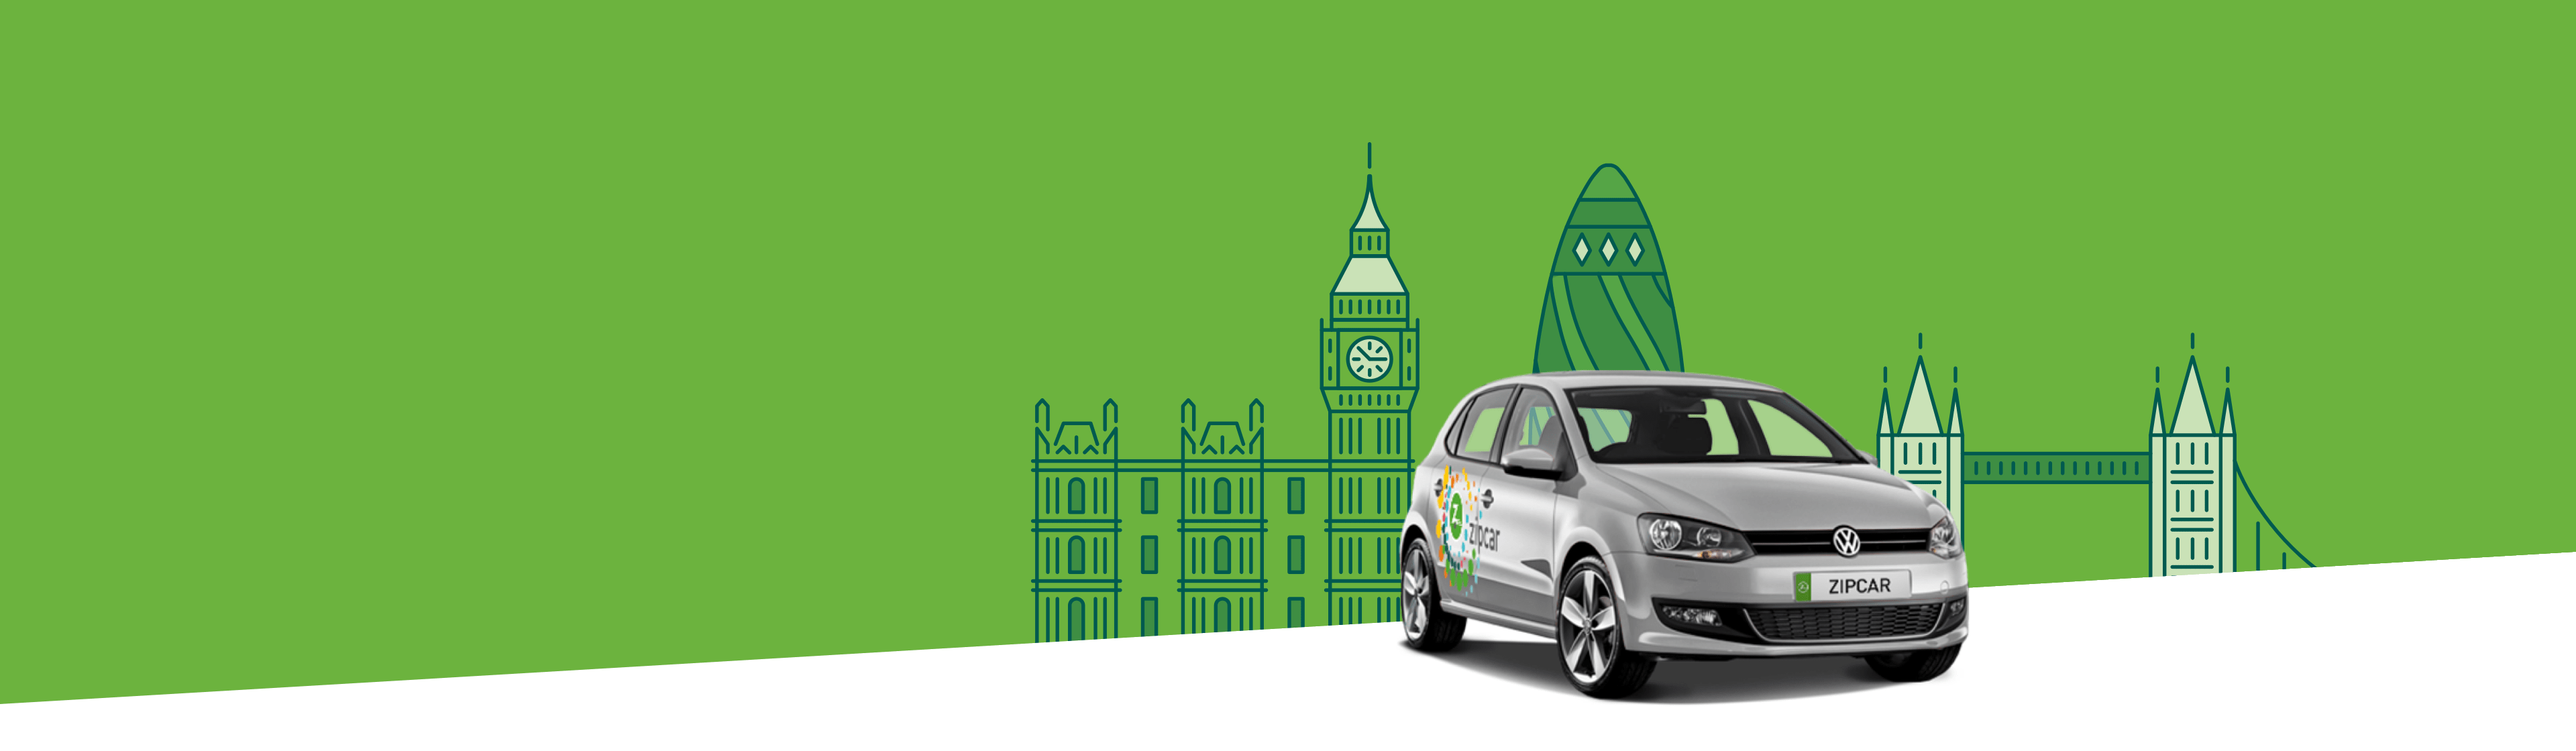 Silver Zipcar profile with illustrated cityscape behind it